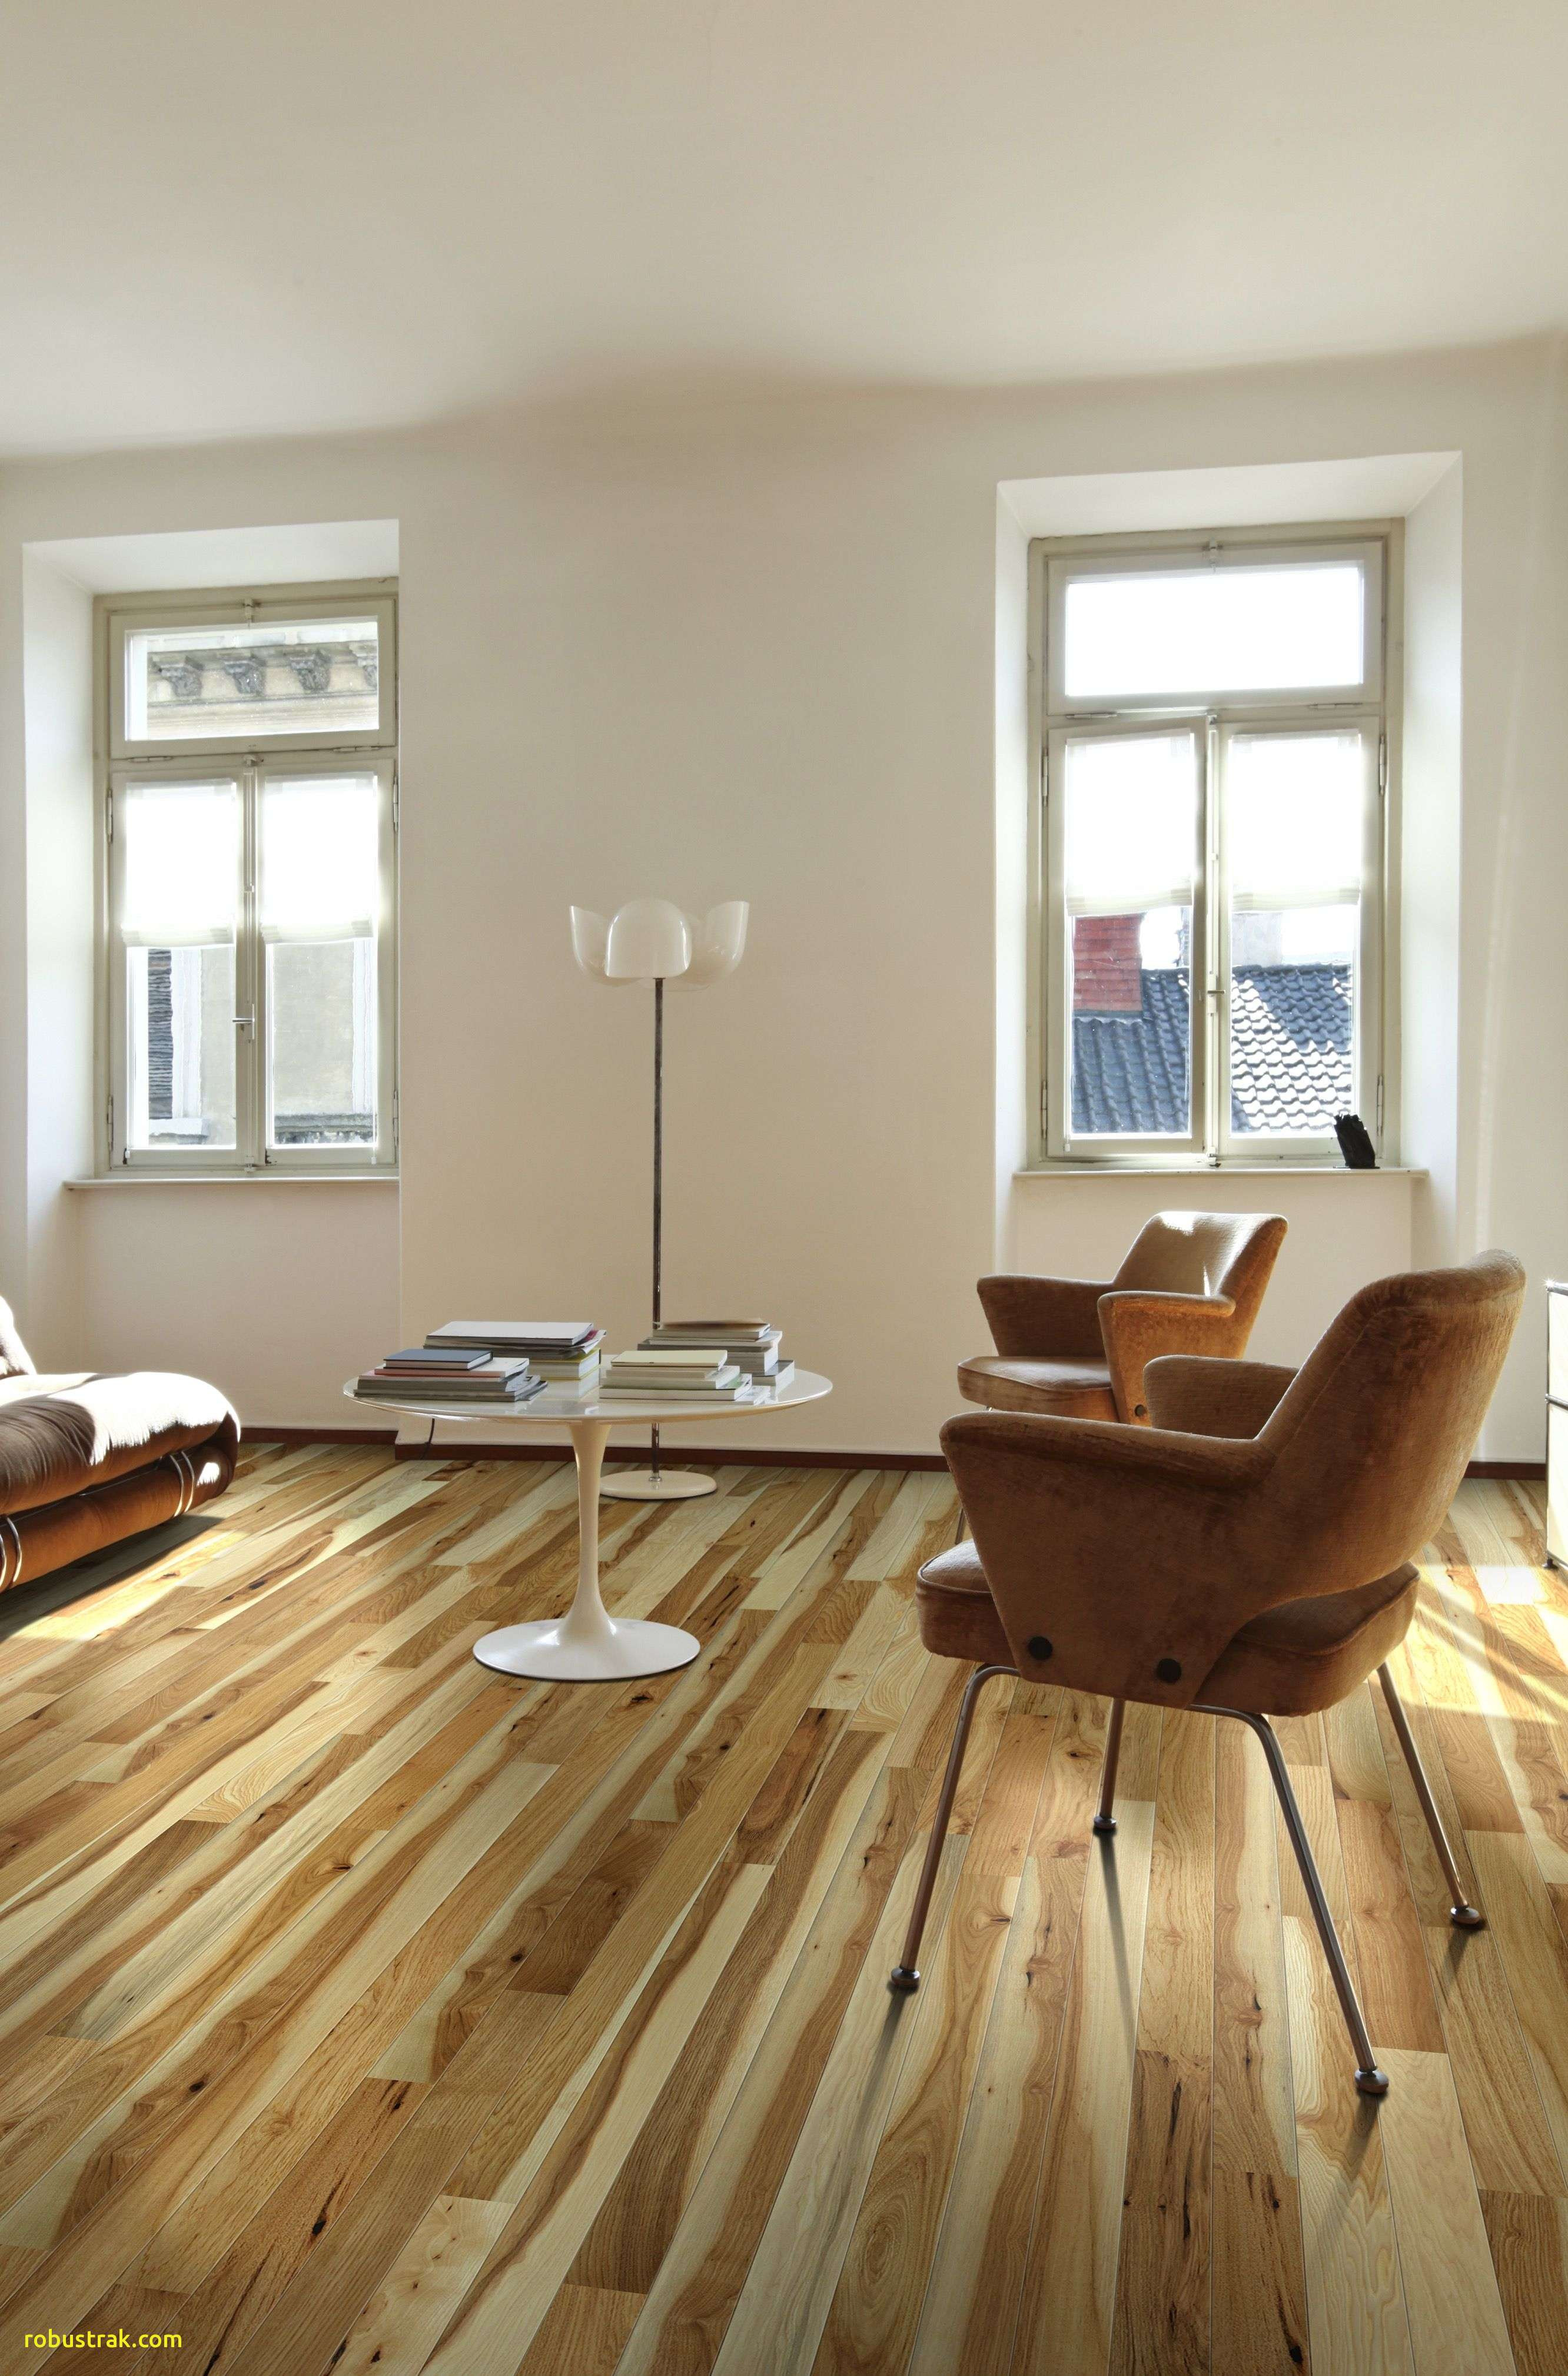 images of hickory hardwood flooring of awesome furniture for light wood floors home design ideas within pre finished hardwood floor installation services in kansas city by svb wood floors if your home